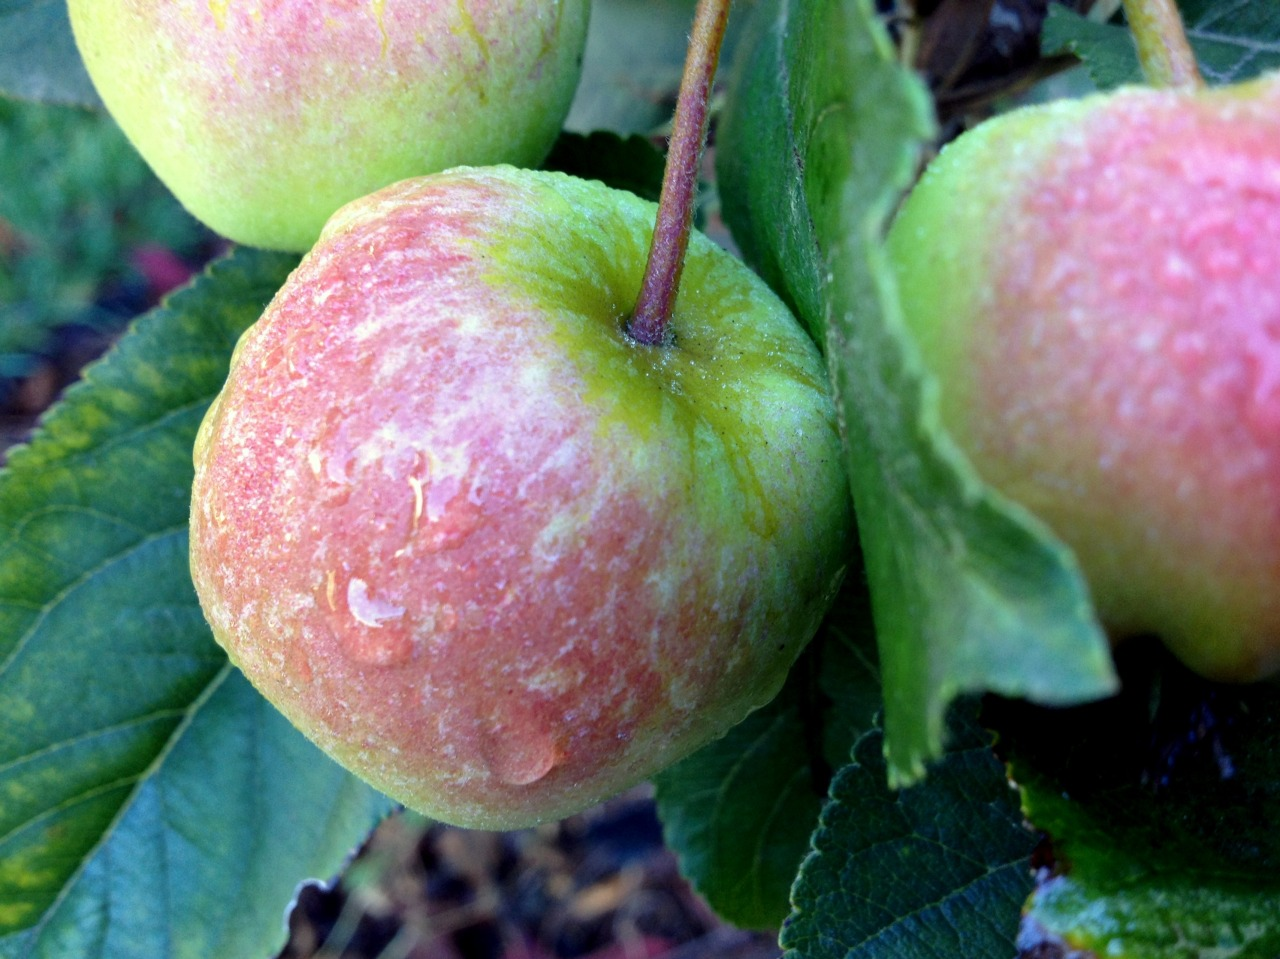 October 19, 2013    Morning dew on the second crop of 'Dorsett Golden' apples that are coming along.